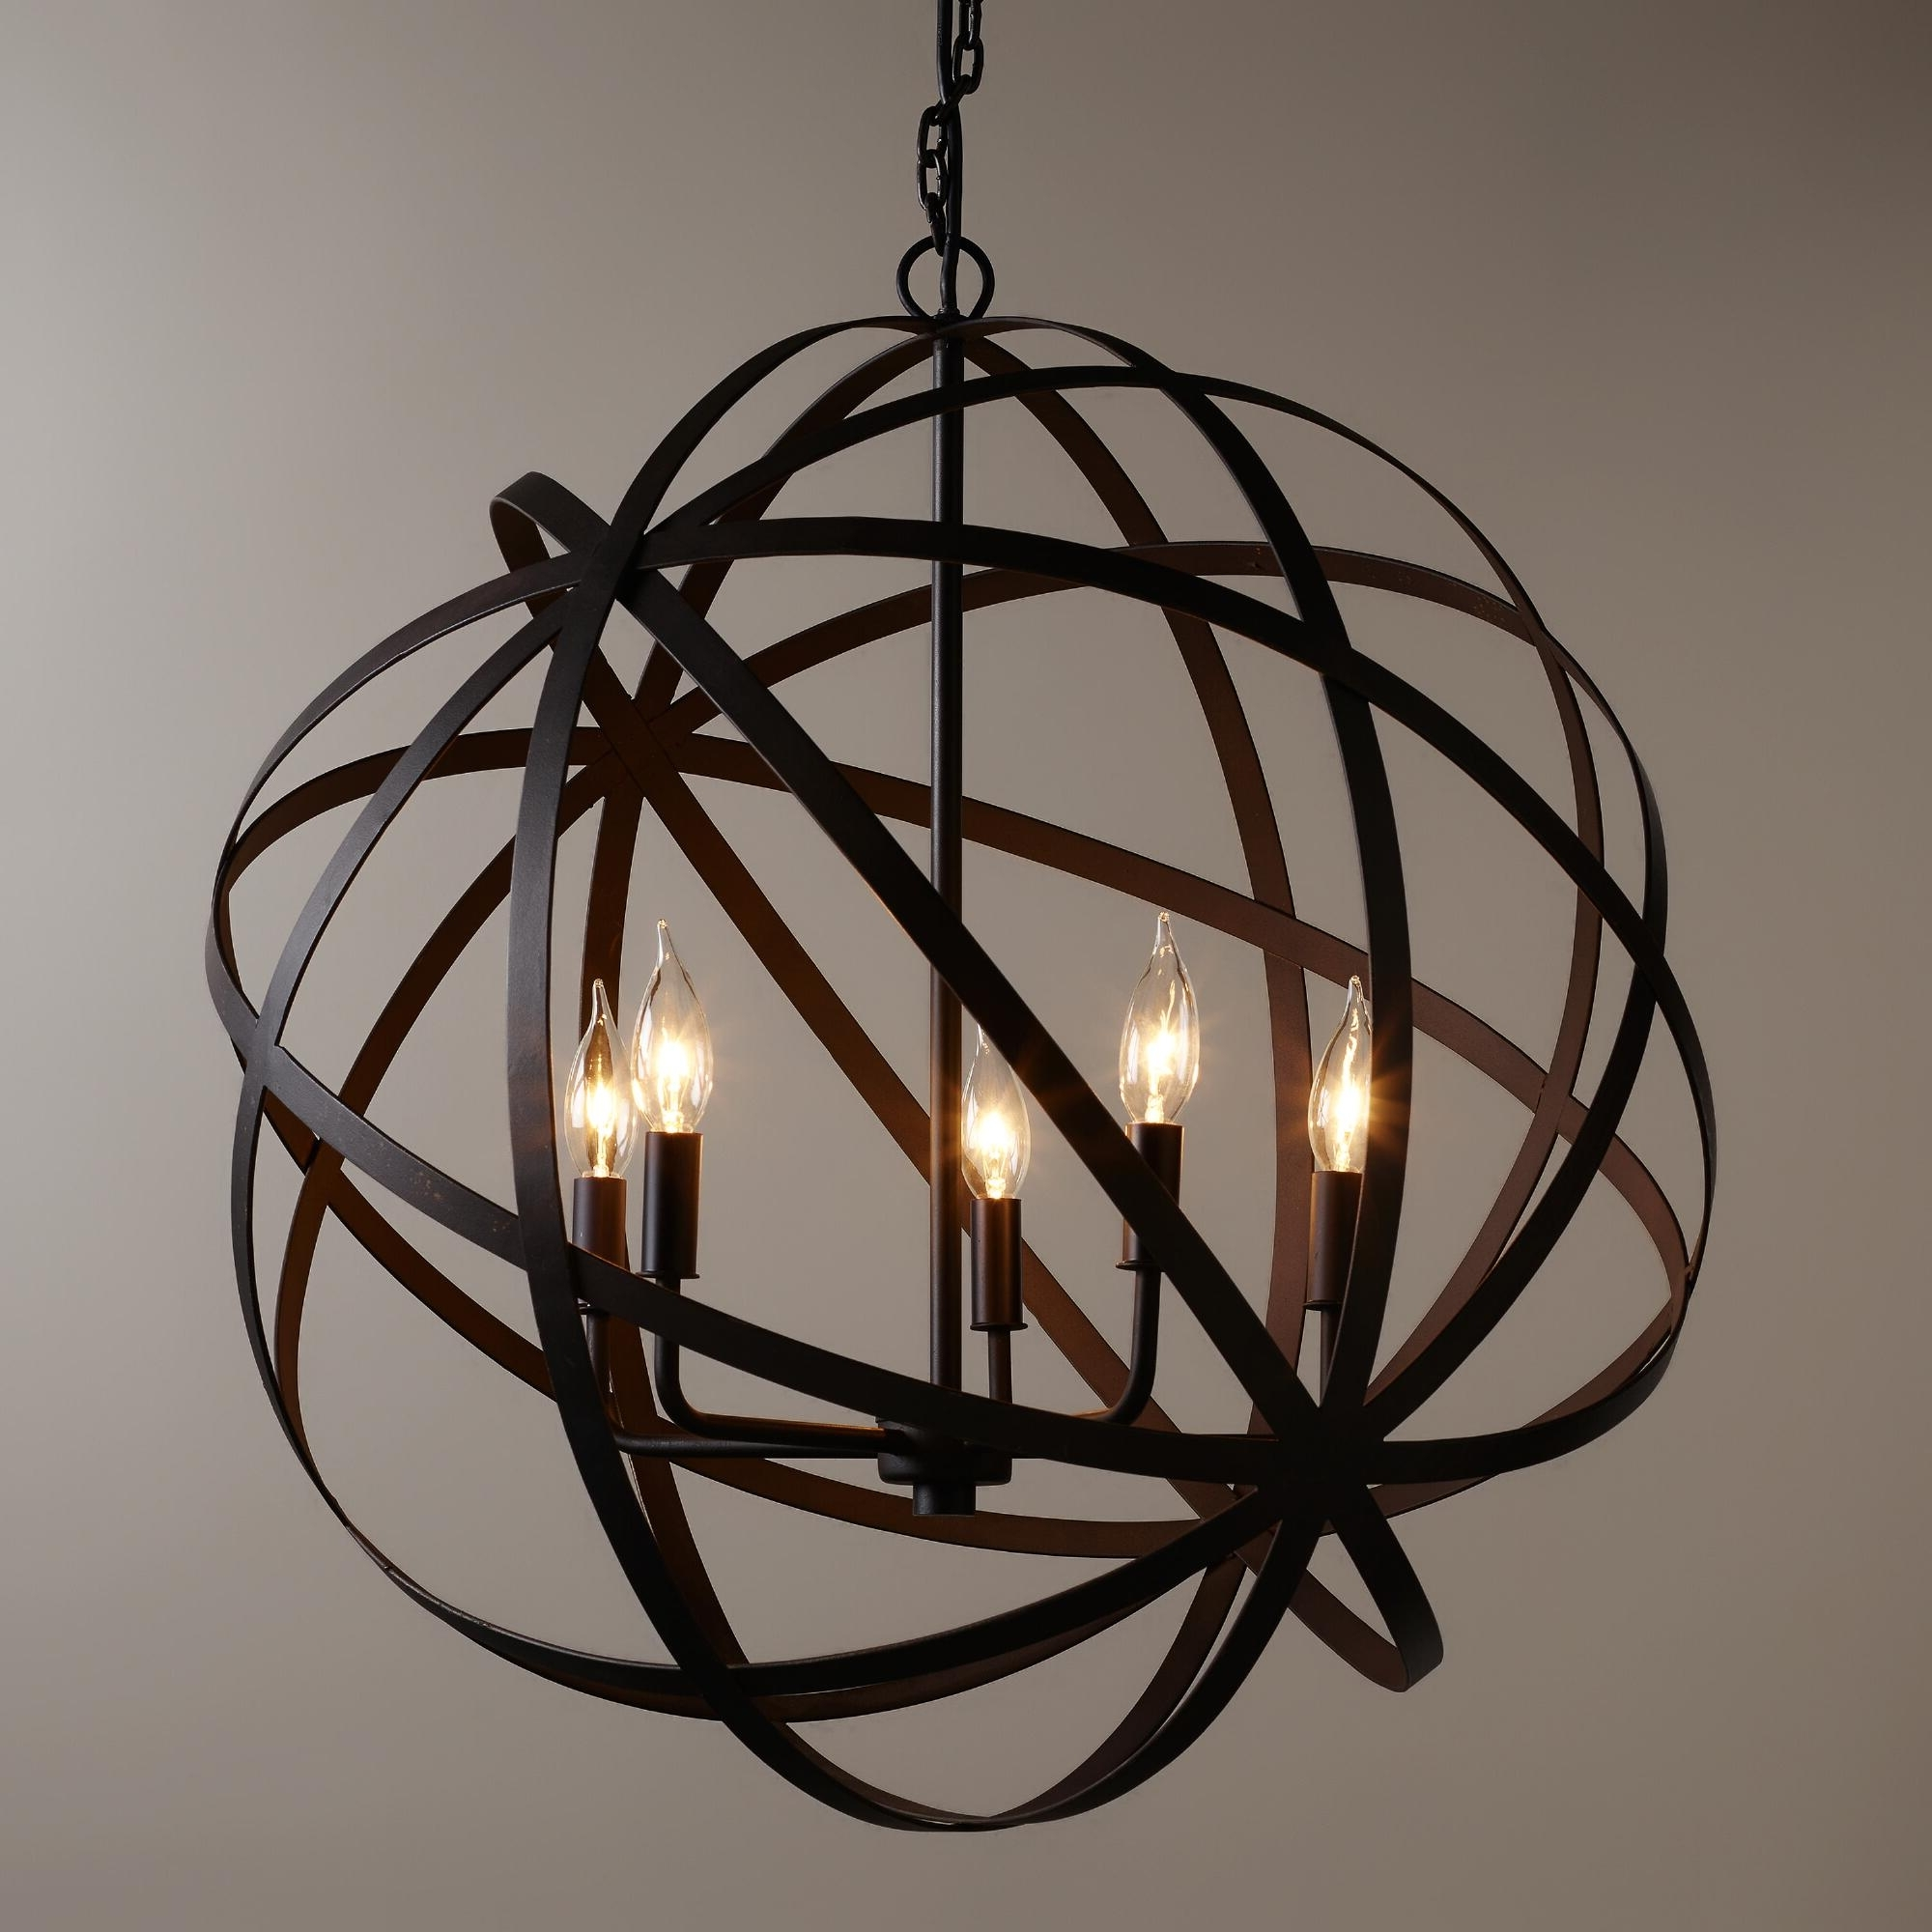 Light : Creative Orb Chandelier About Interior Designing Home Ideas Pertaining To Well Known Metal Chandeliers (View 4 of 15)